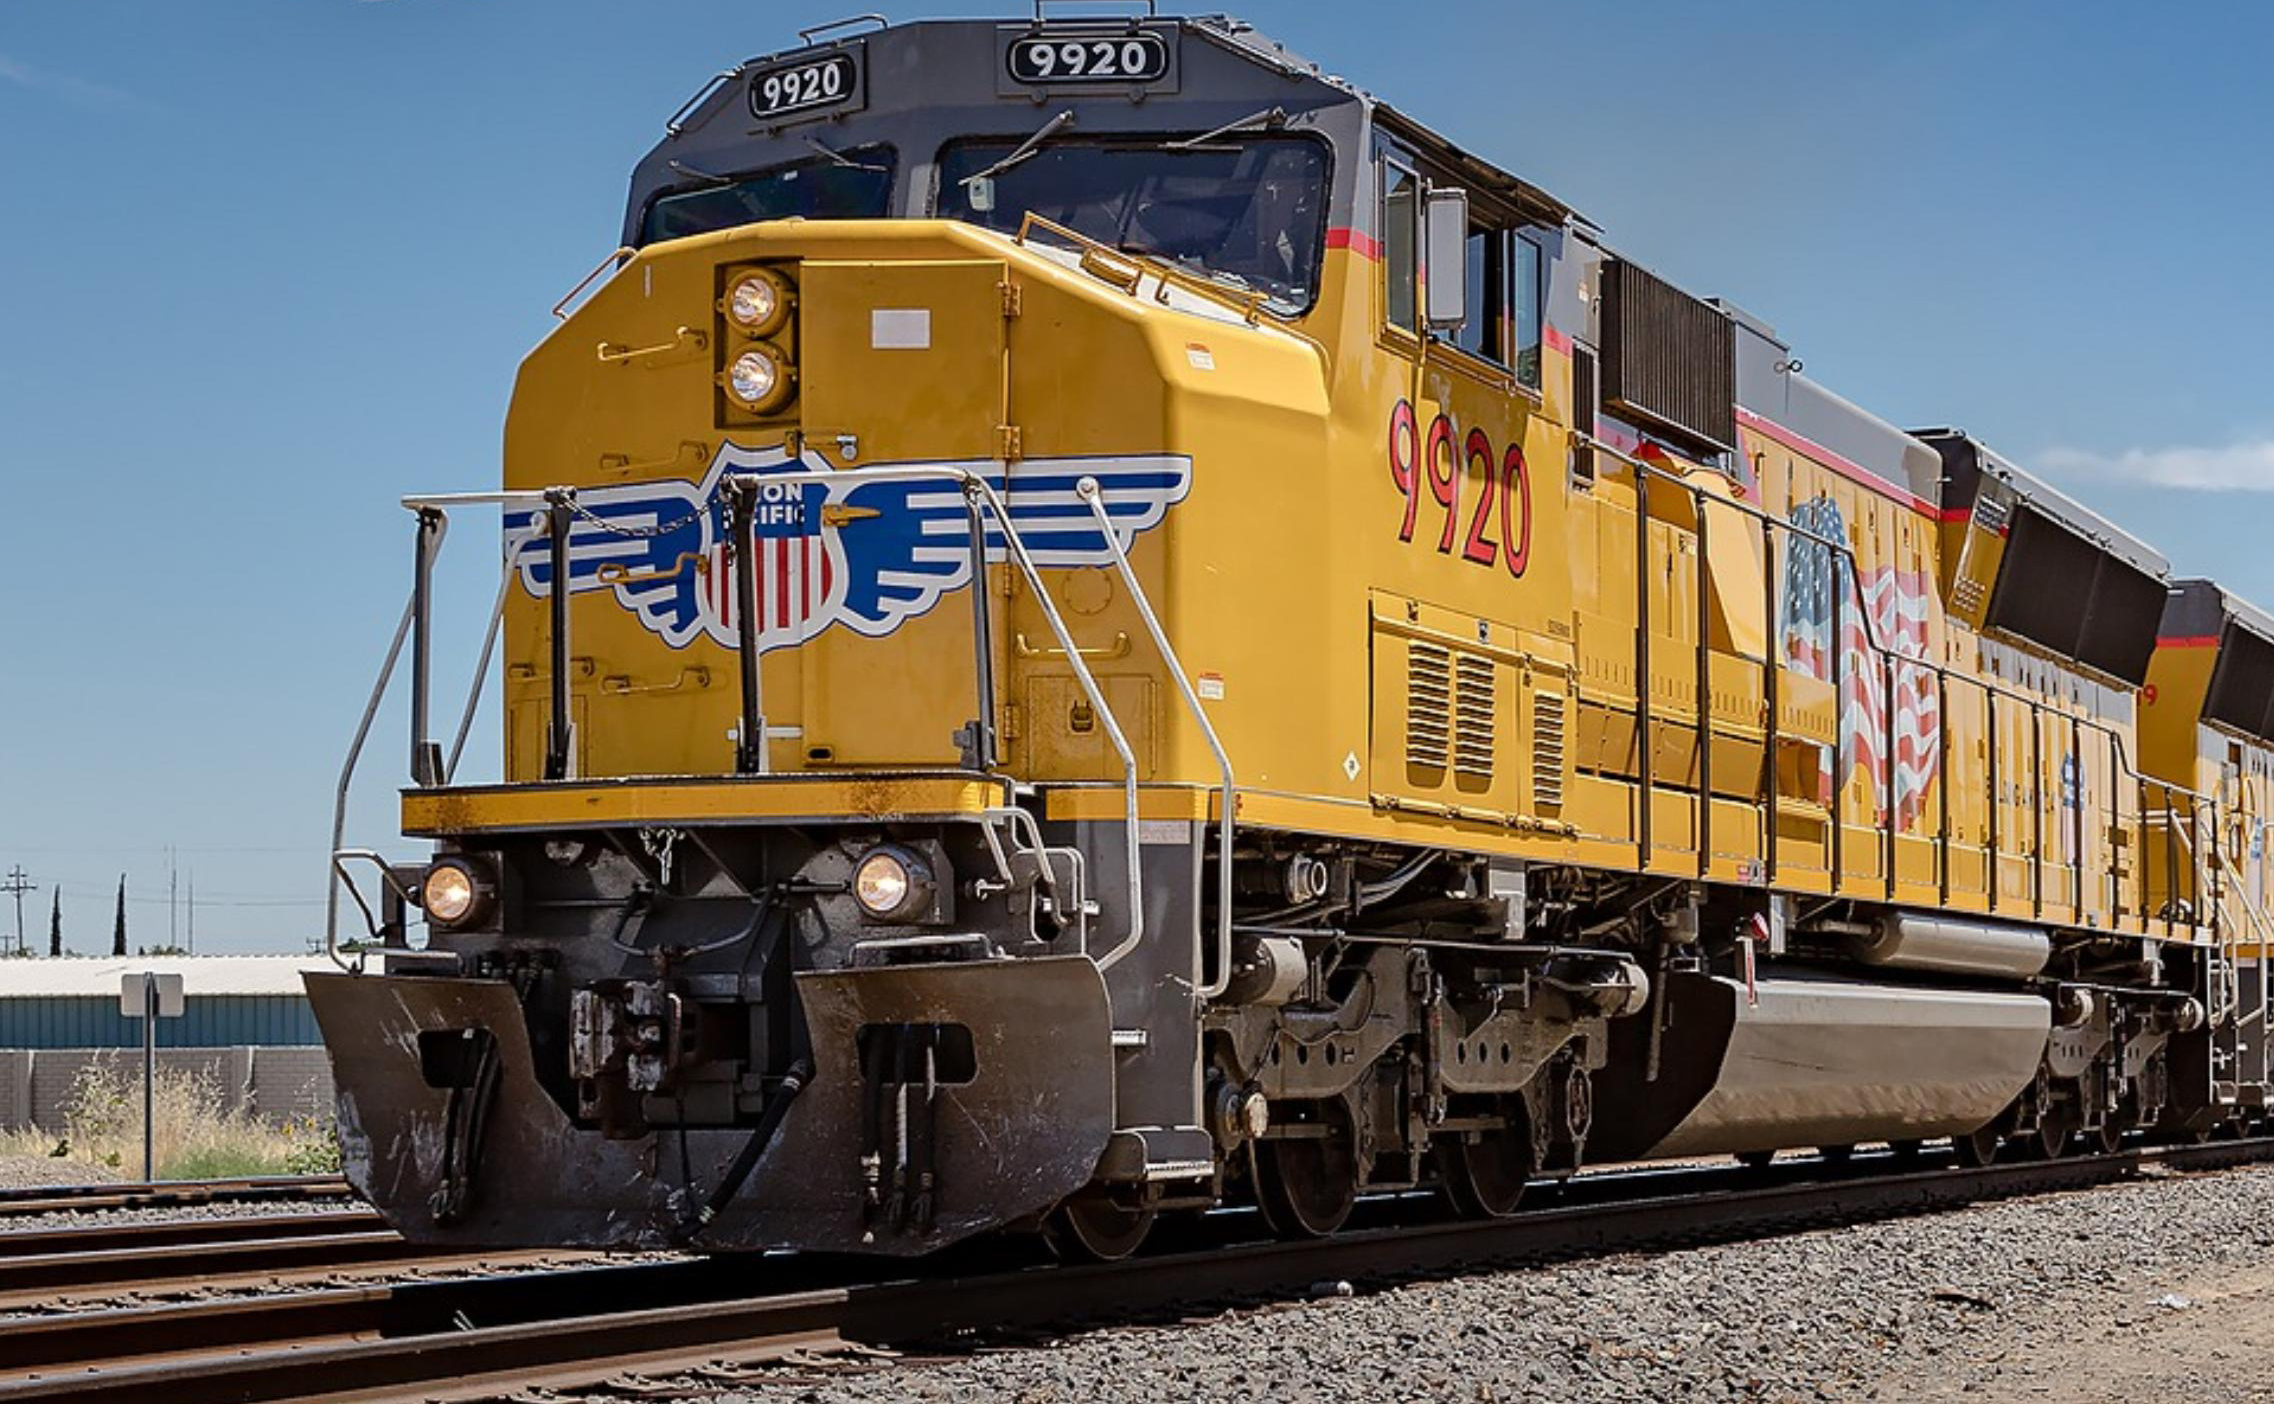 yellow Union Pacific freight train on tracks